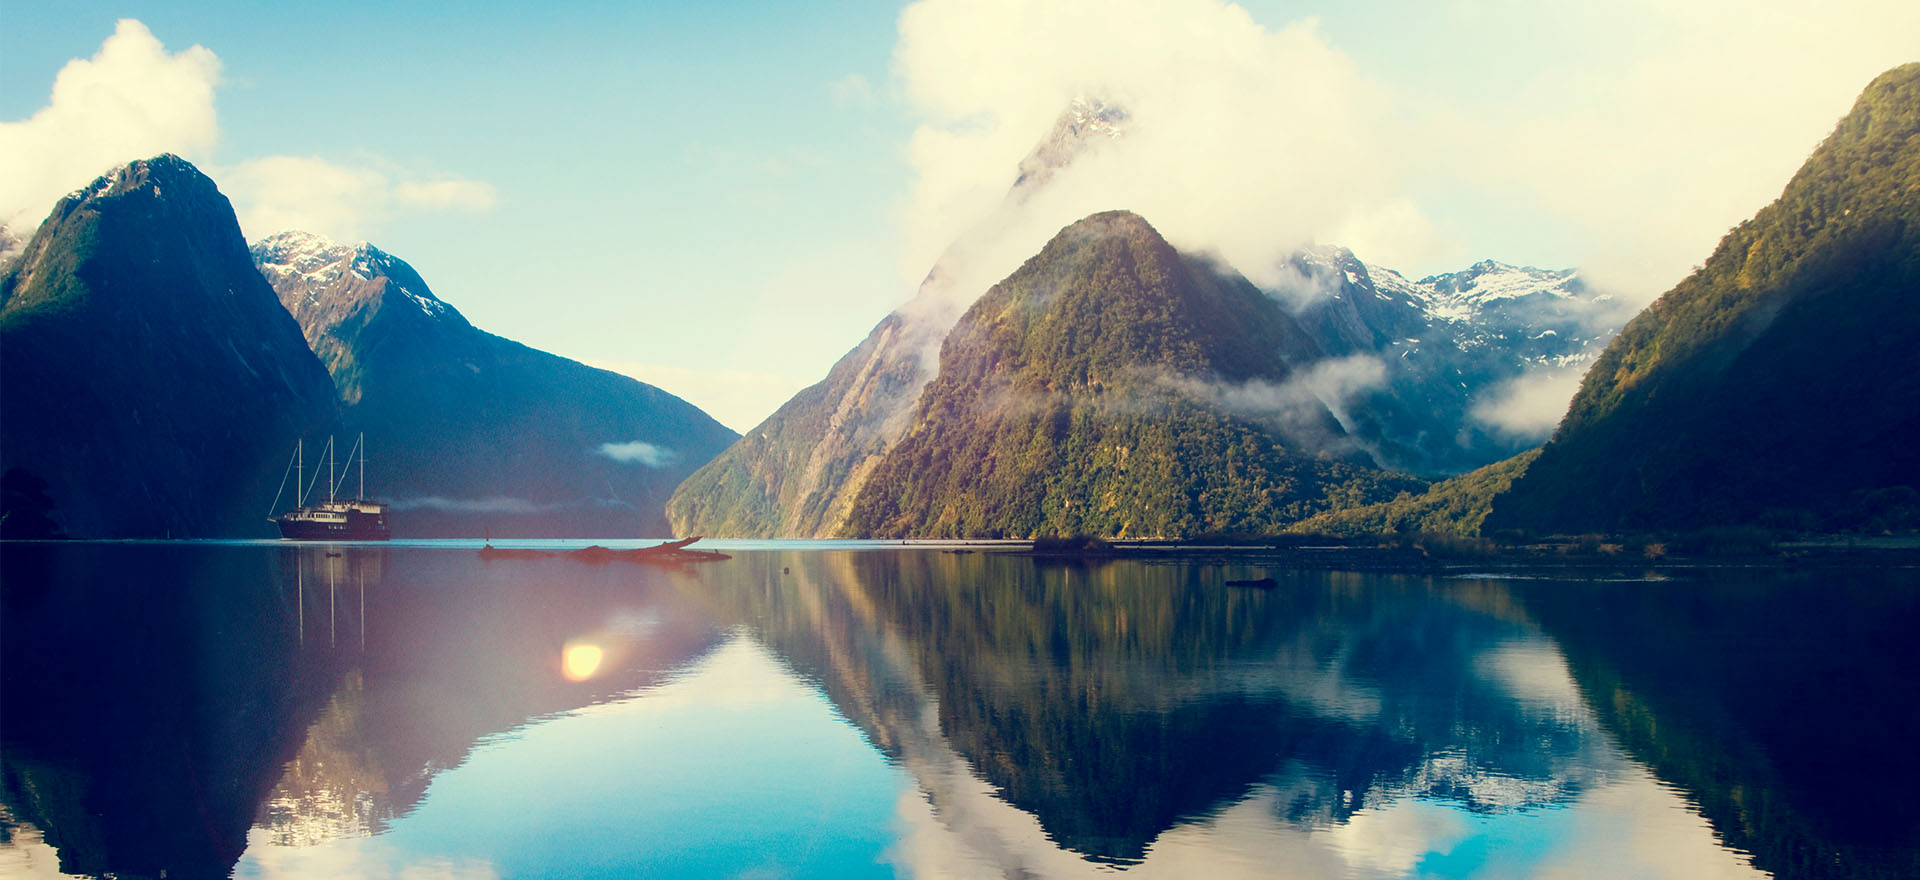 Milford Sound mirror reflection in water